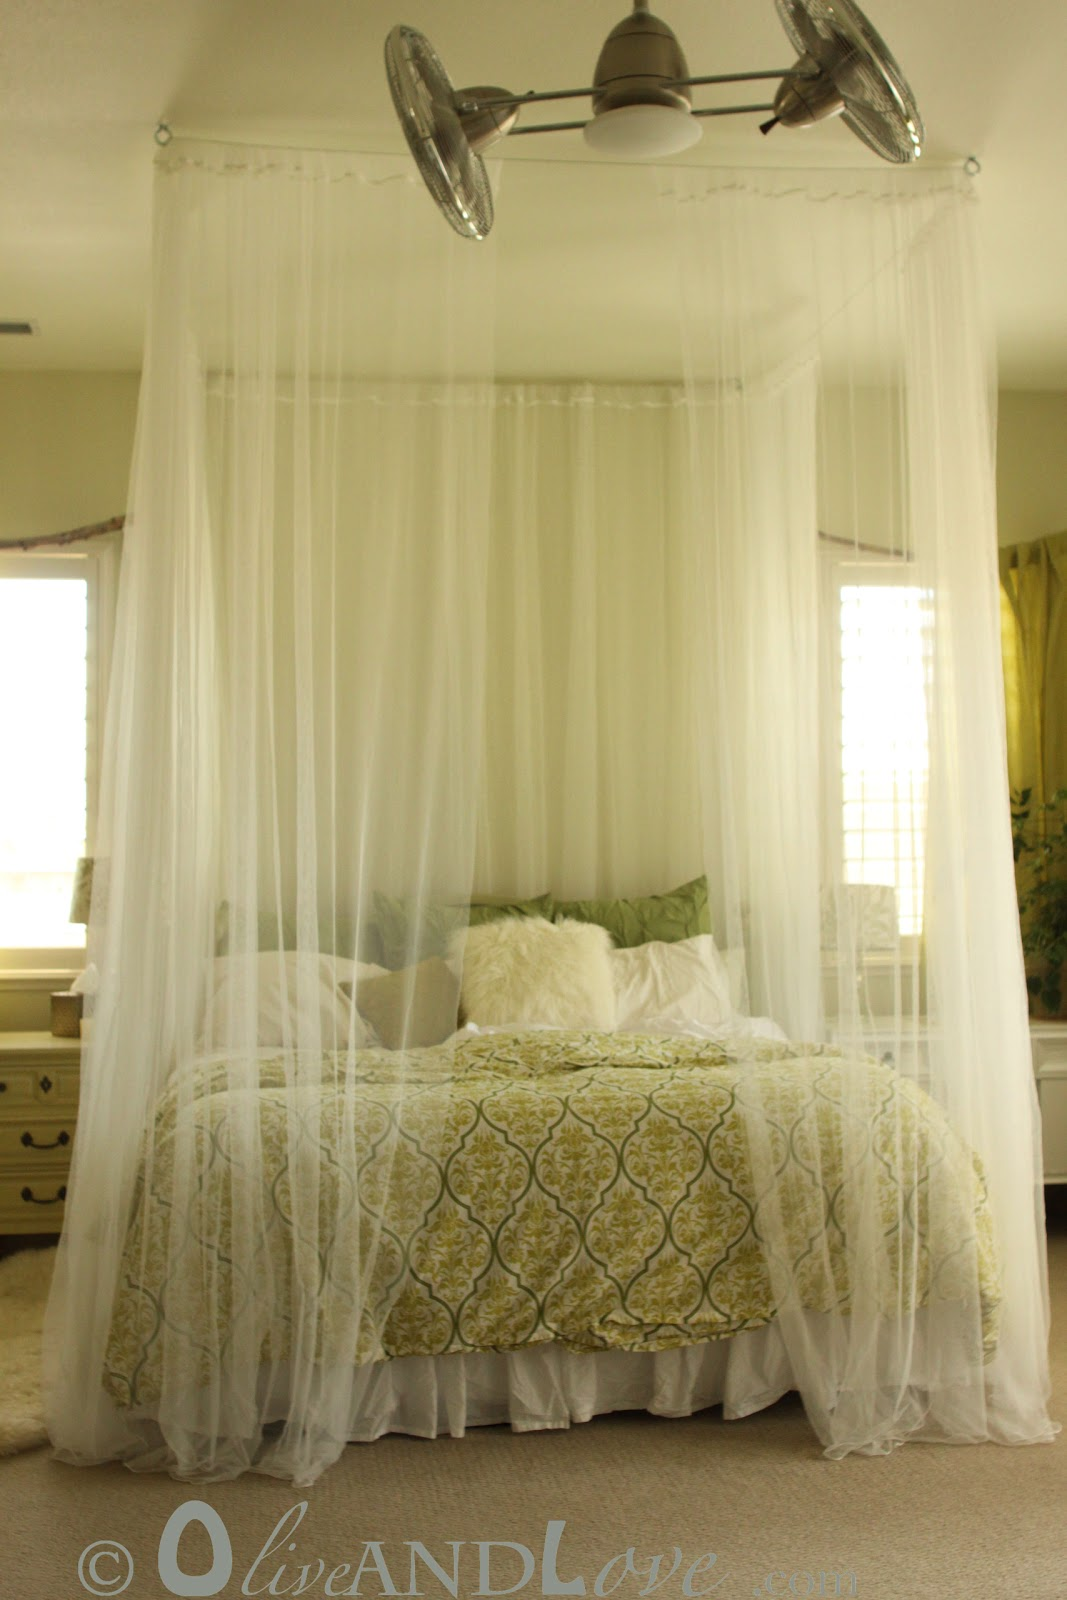 Olive and love ceiling mounted bed canopy - Pictures of canopy beds ...